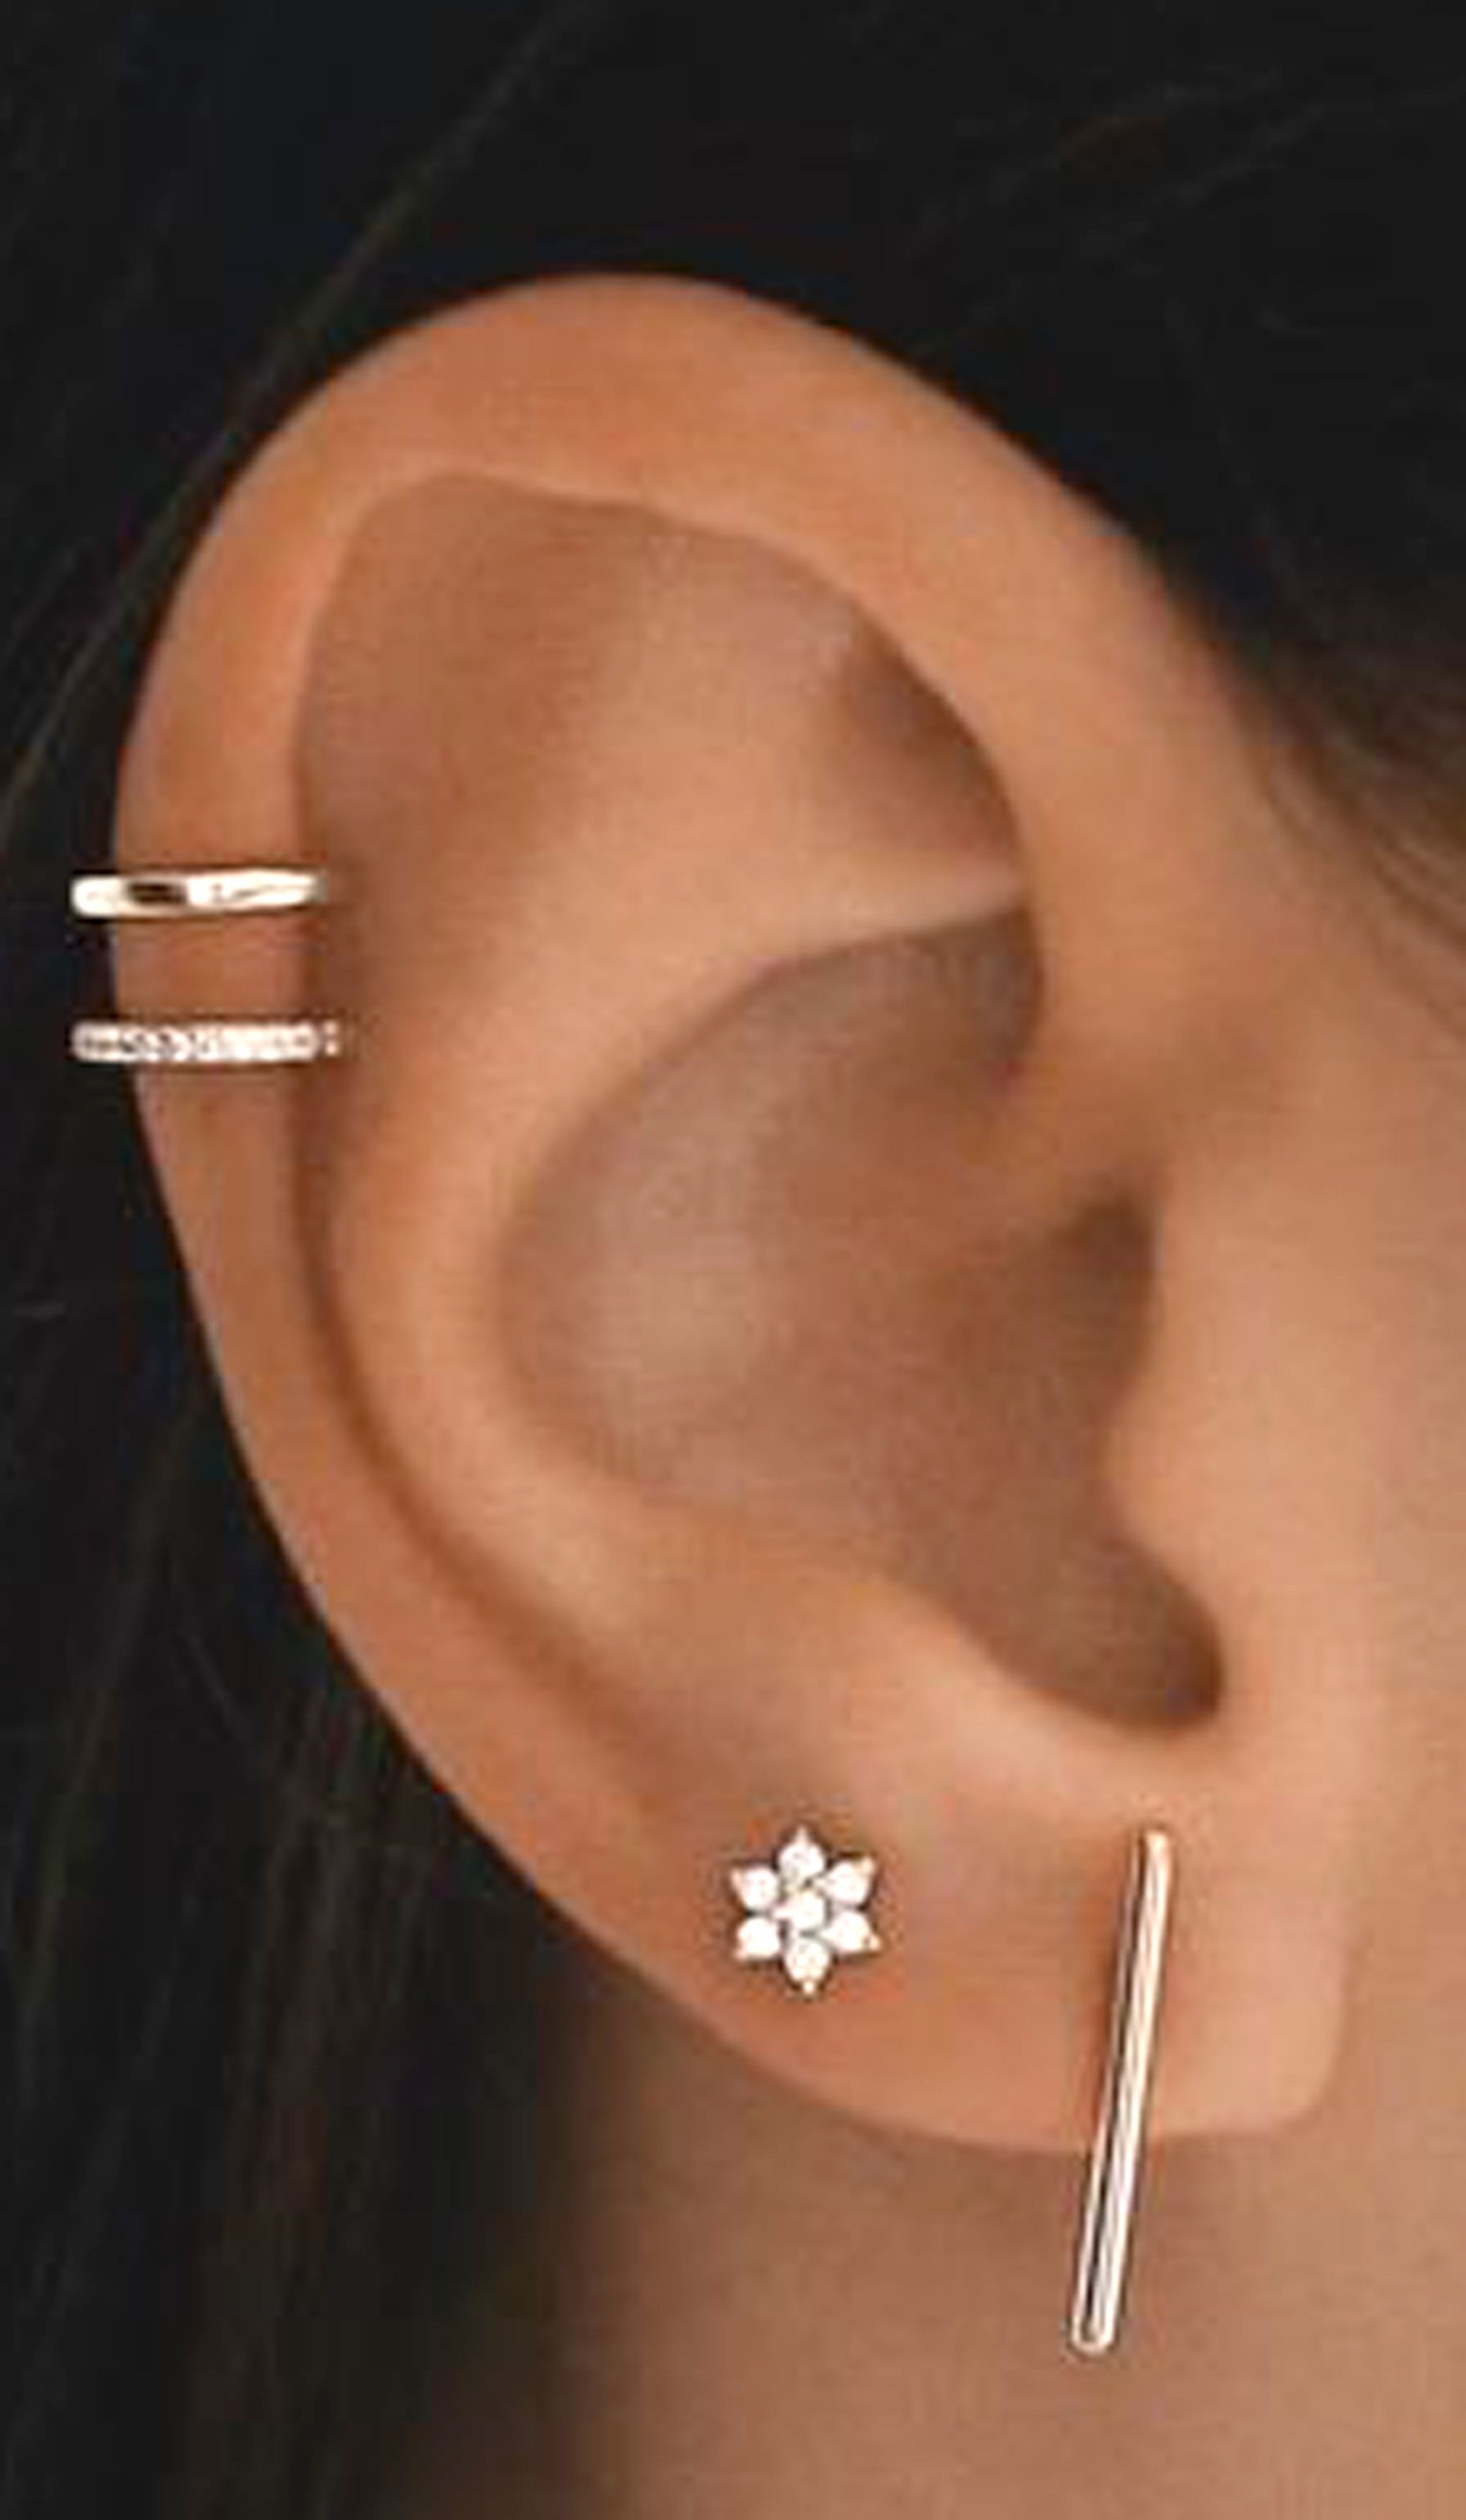 Cute Multiple Ear Piercing Ideas for Teens Flower Earring Stud in Silver 16G #earpeircings